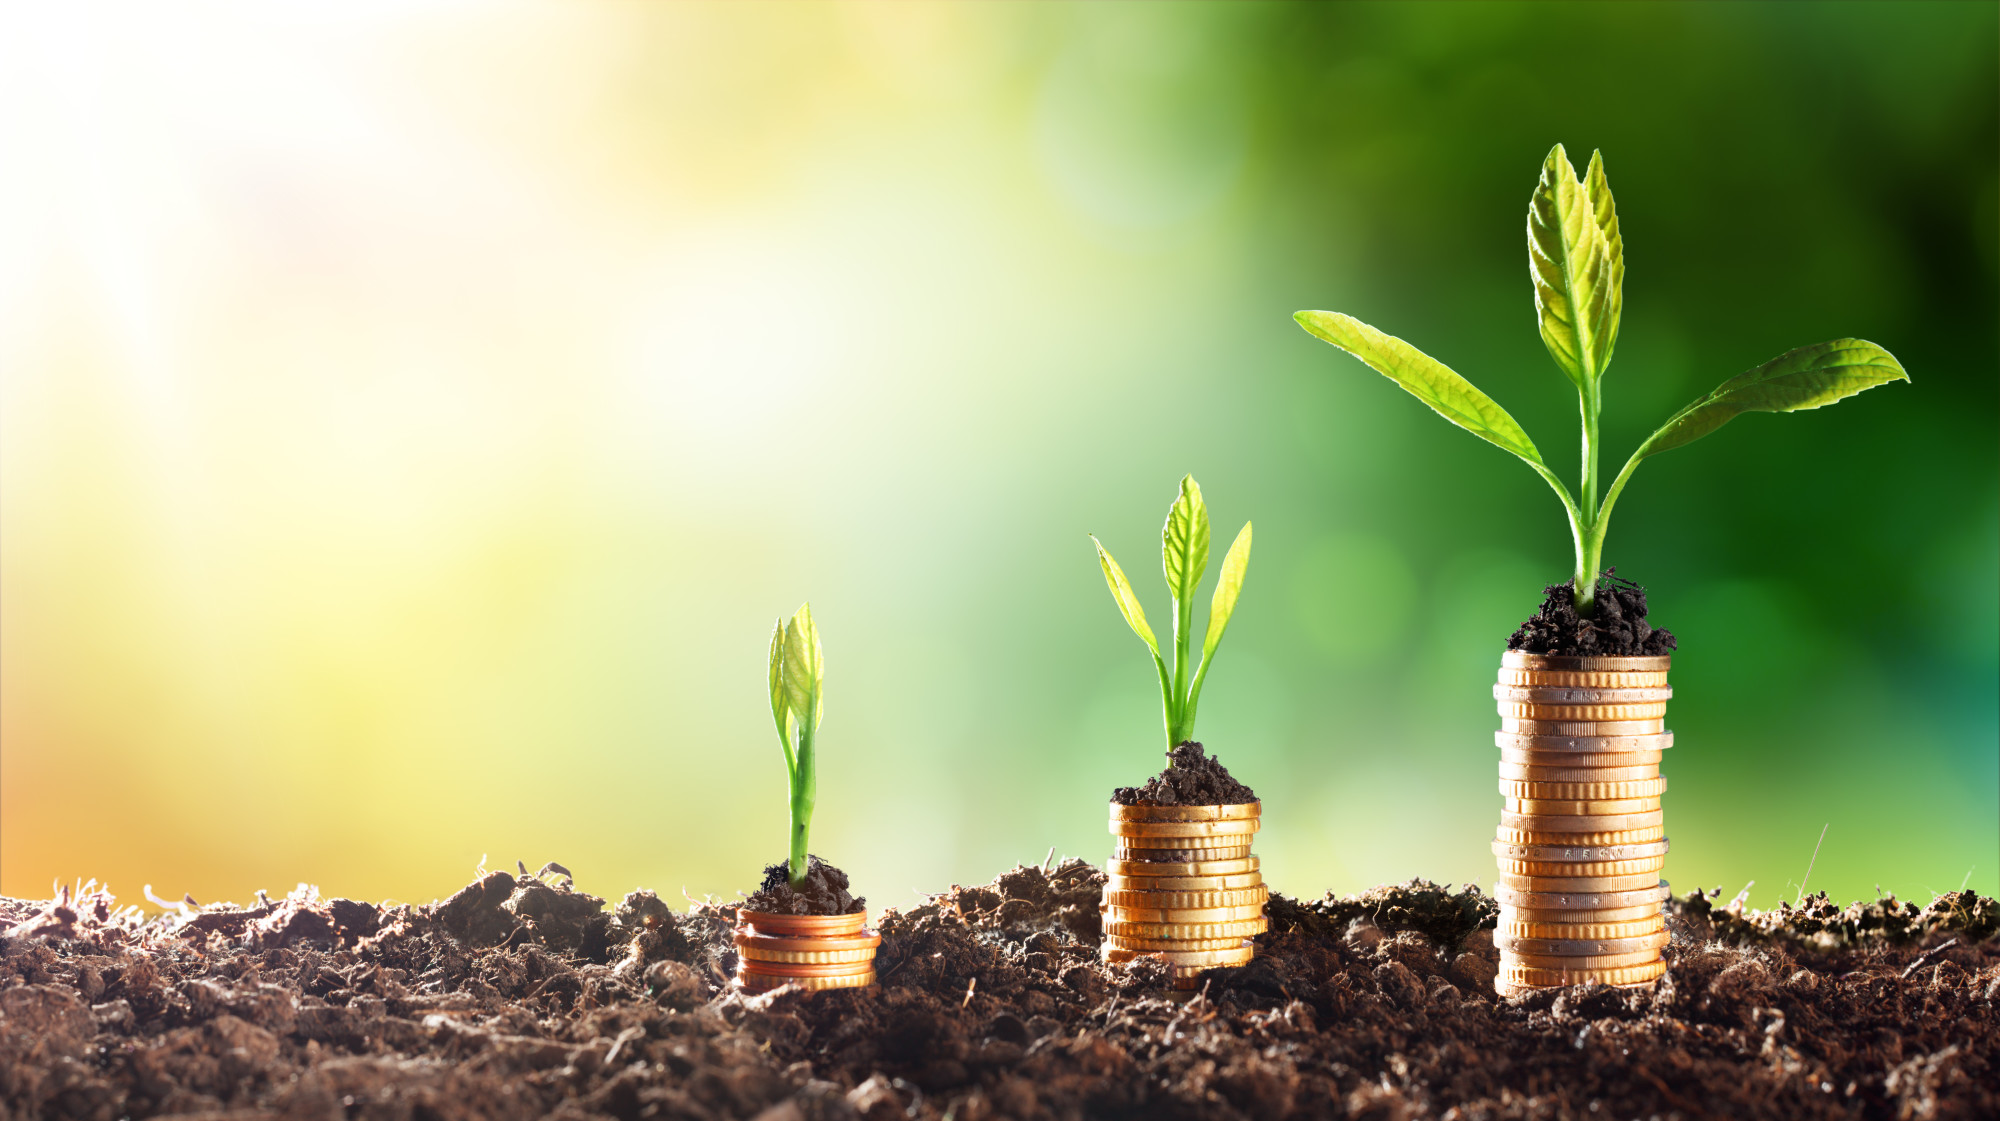 Are you trying to choose an investment bank? If so, there are some things you should know. Here's how to choose an investment bank.